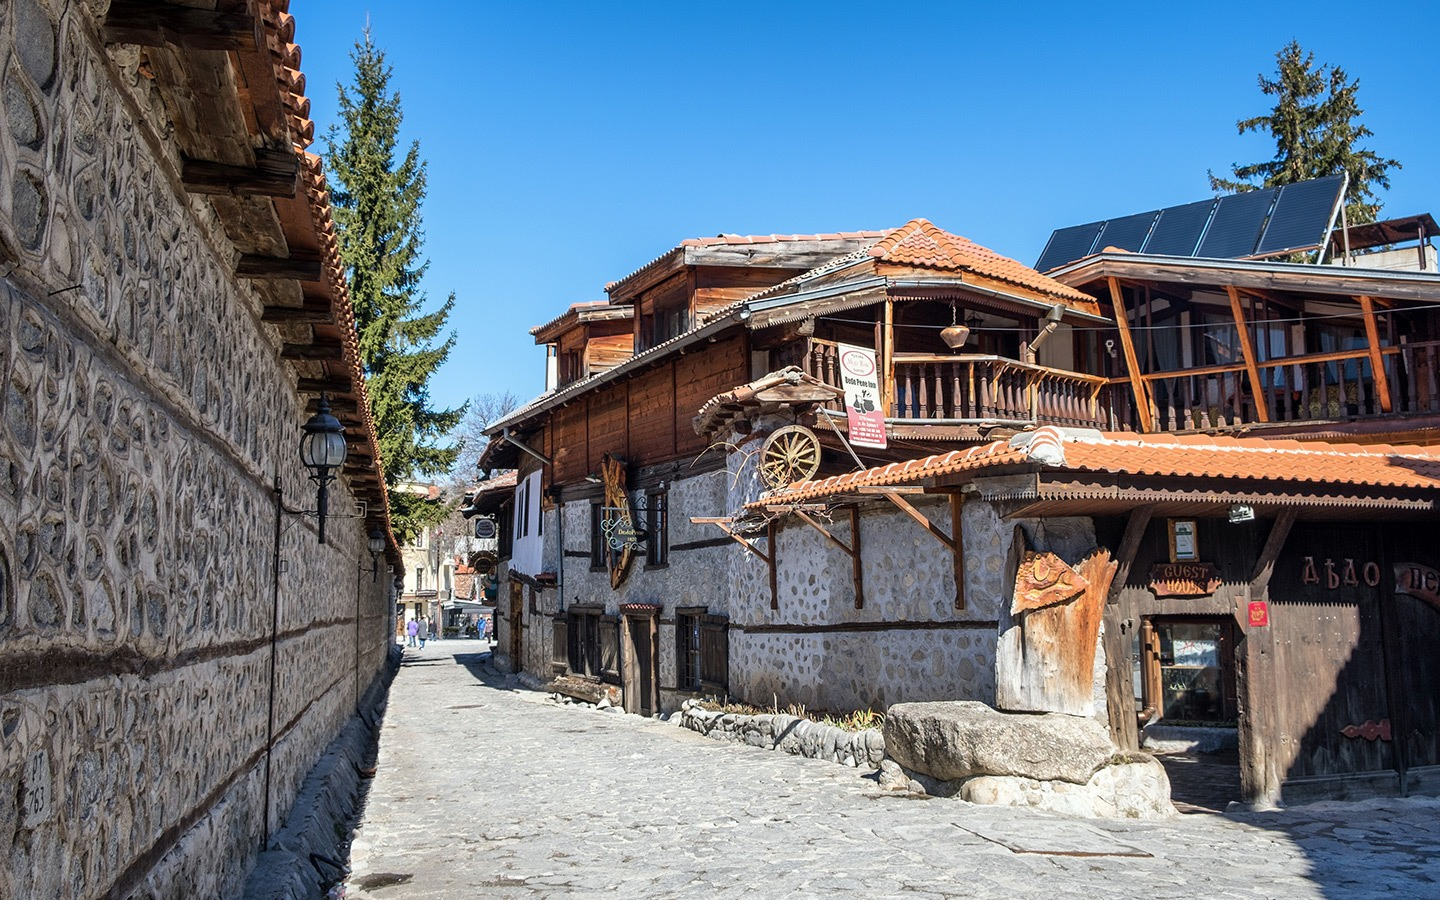 Bansko's UNESCO World Heritage old town